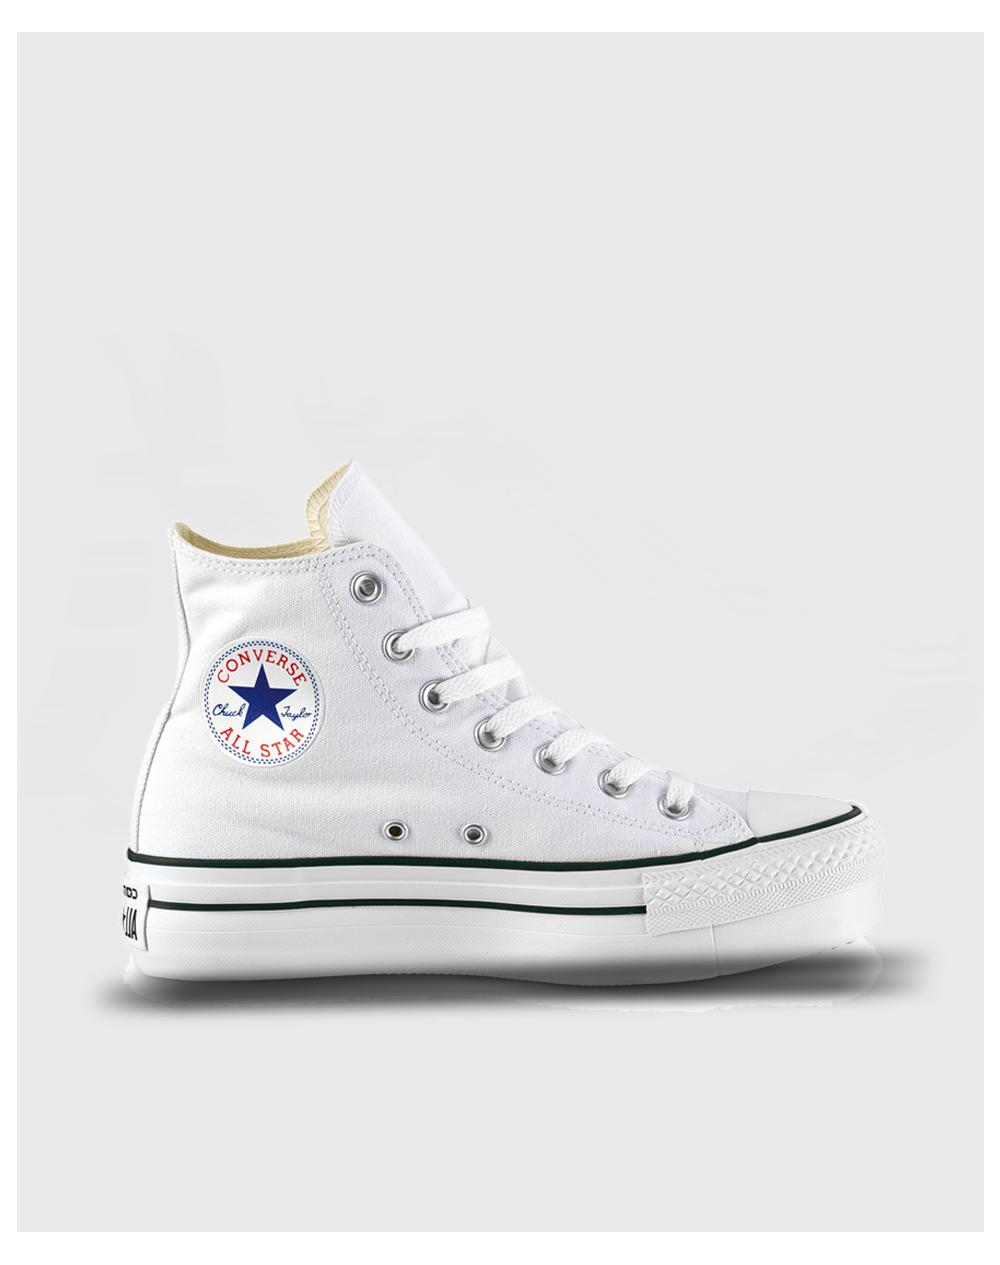 173f4cd34e85af Converse Chuck Taylor All Star Lift Clean Hi Casual Trainers in ...